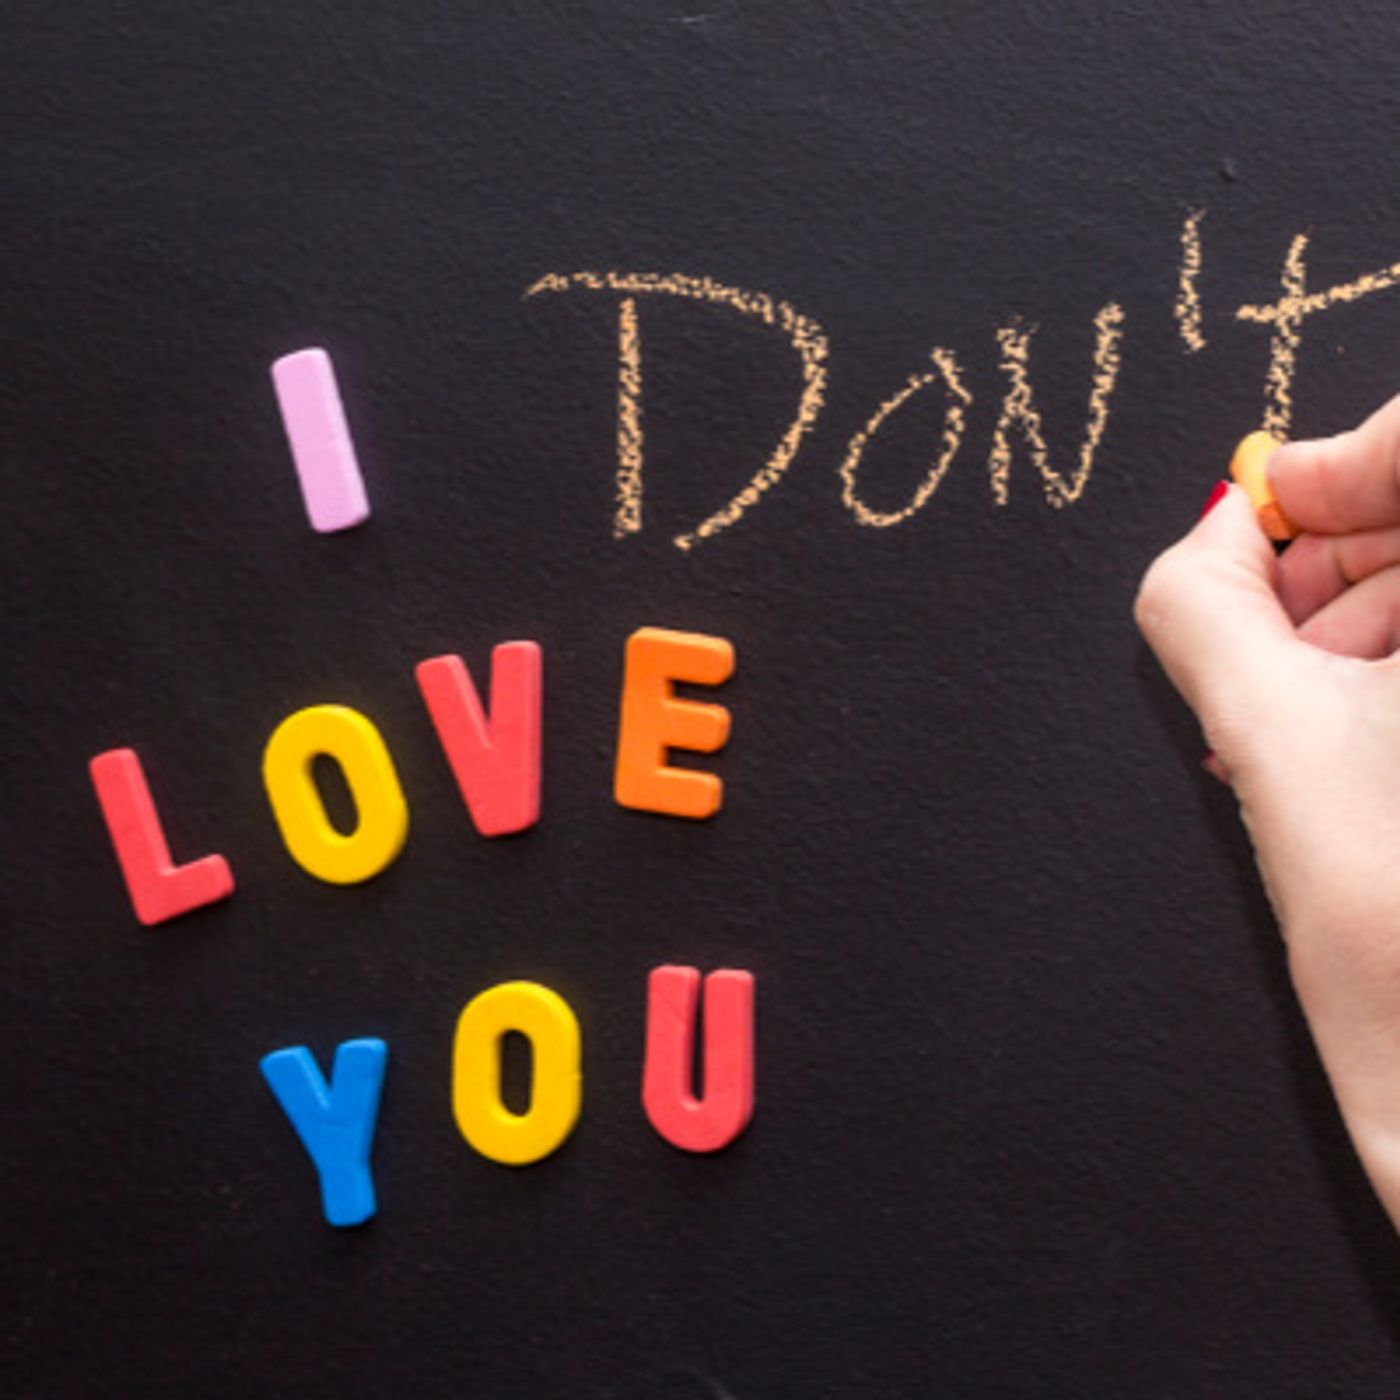 Conversations About Divorce - How To Fall Out Of Love After Divorce